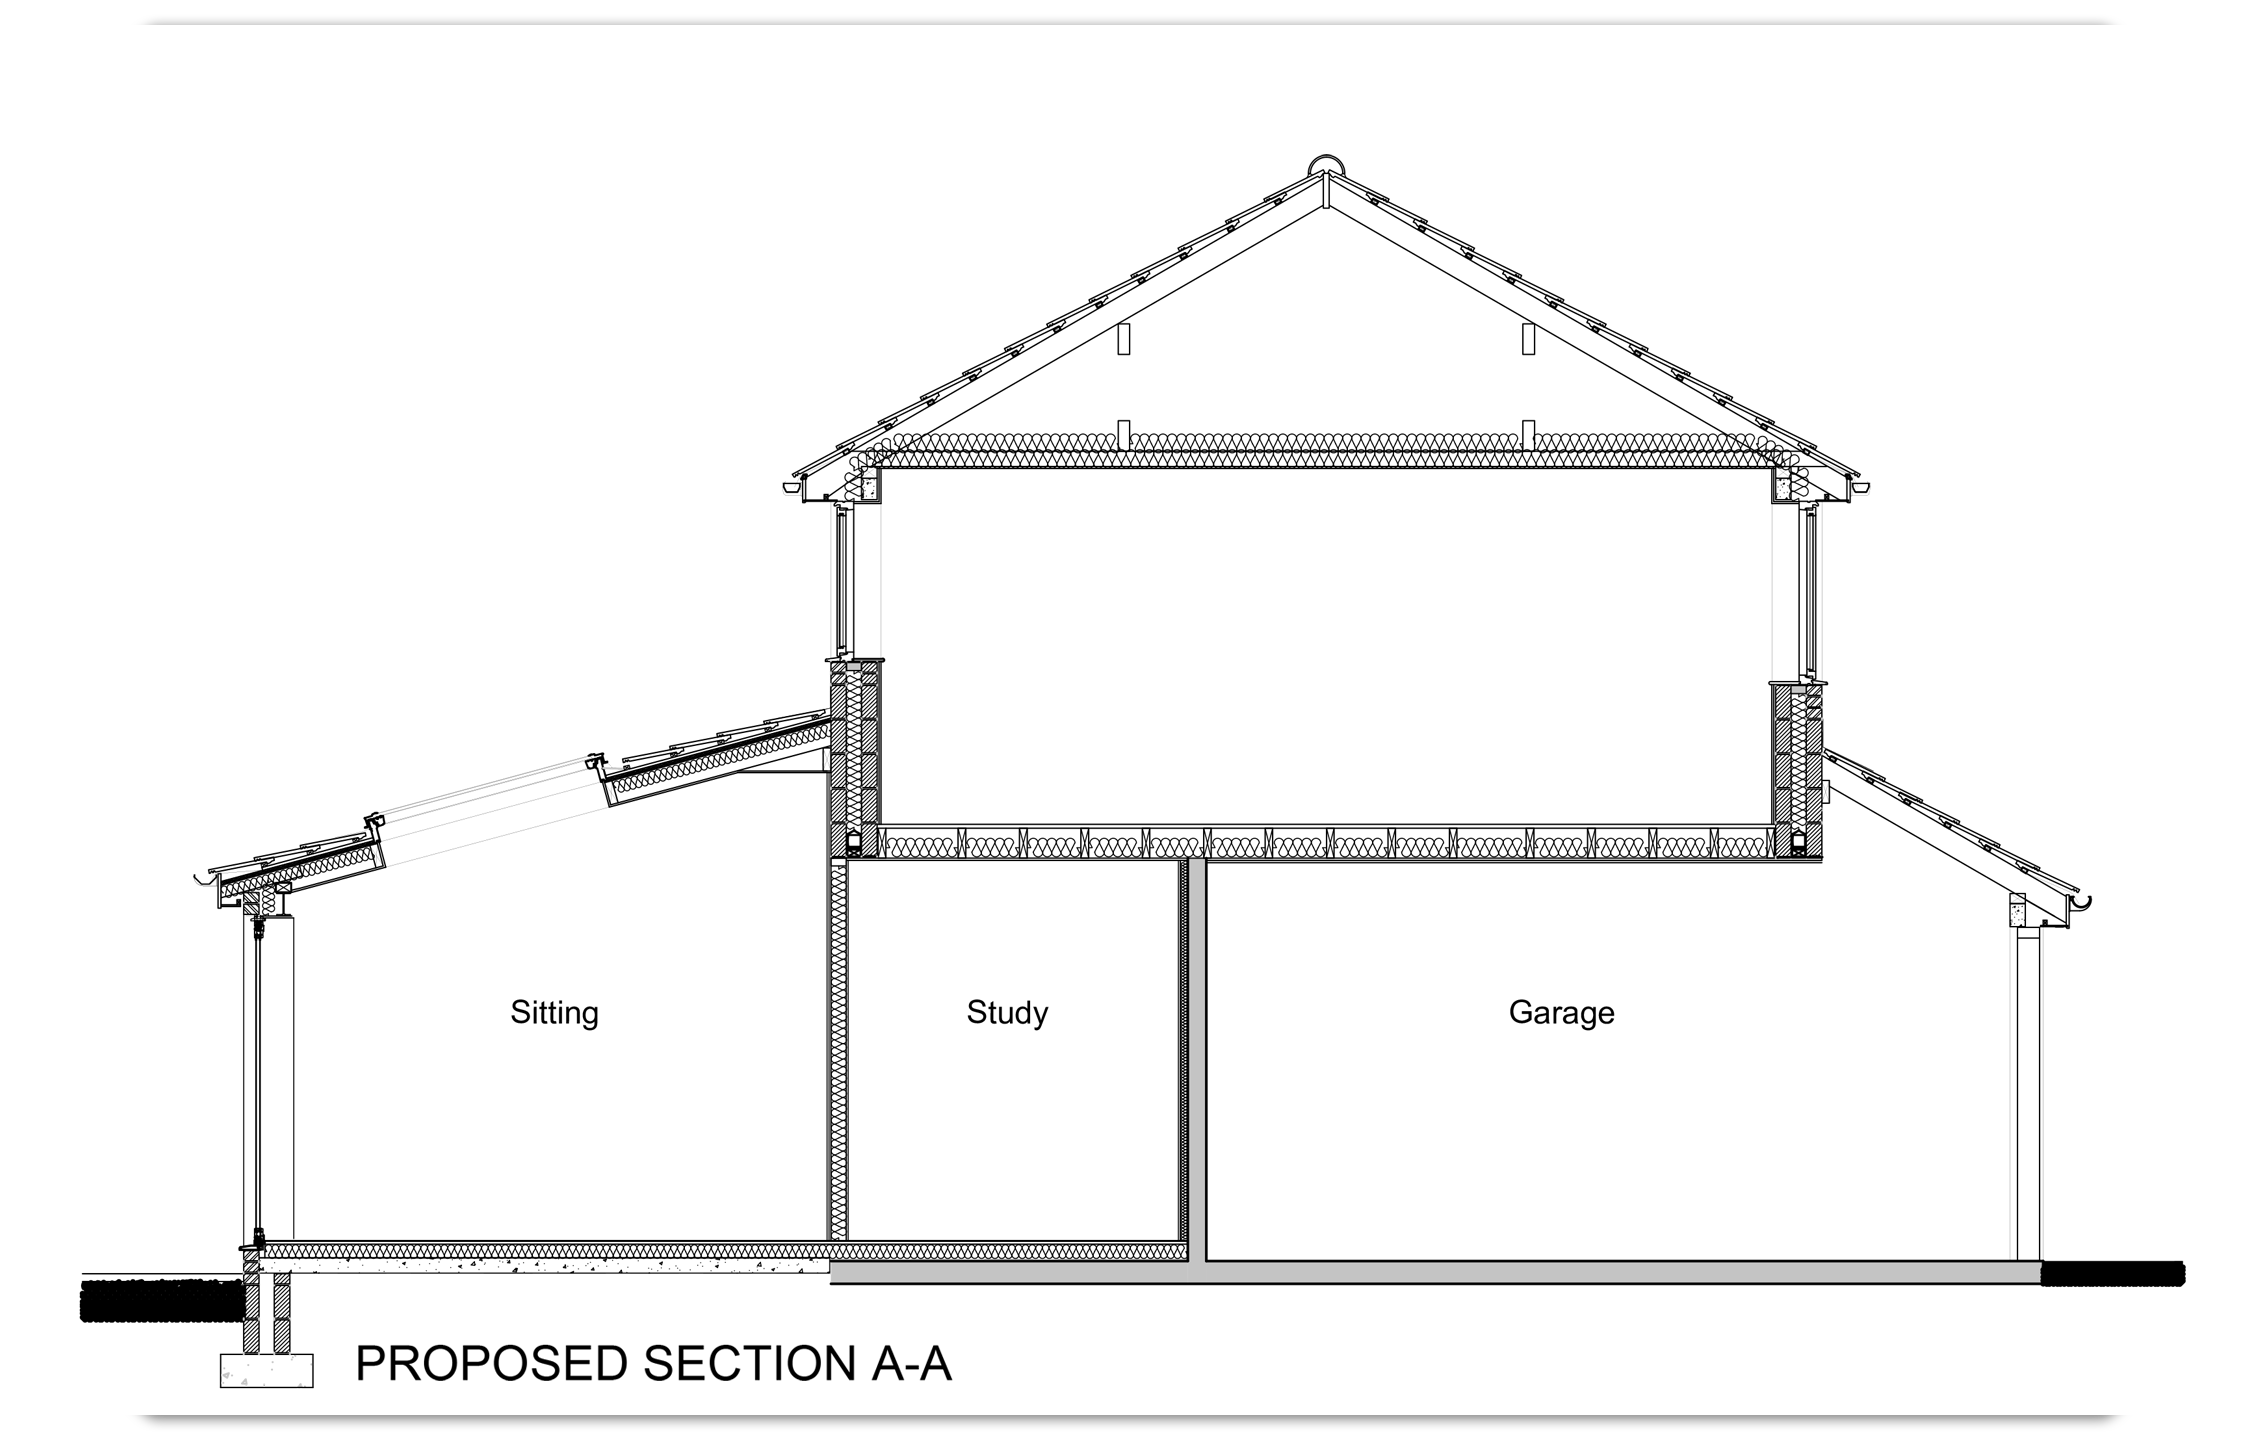 Section A-A Proposed